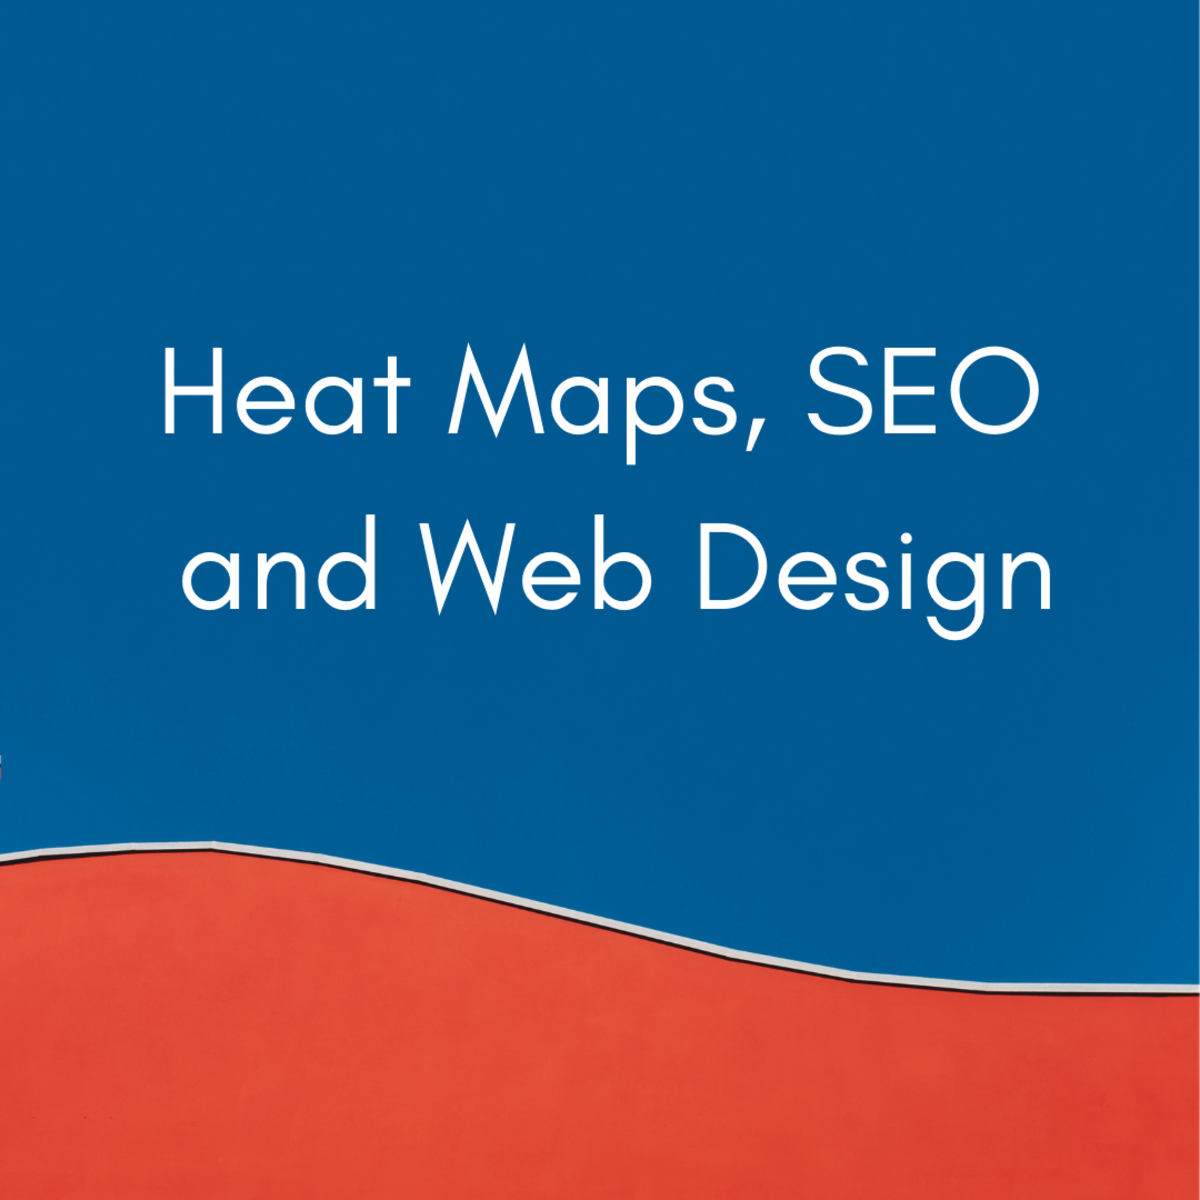 Learn how to use information from heat maps to improve website design.